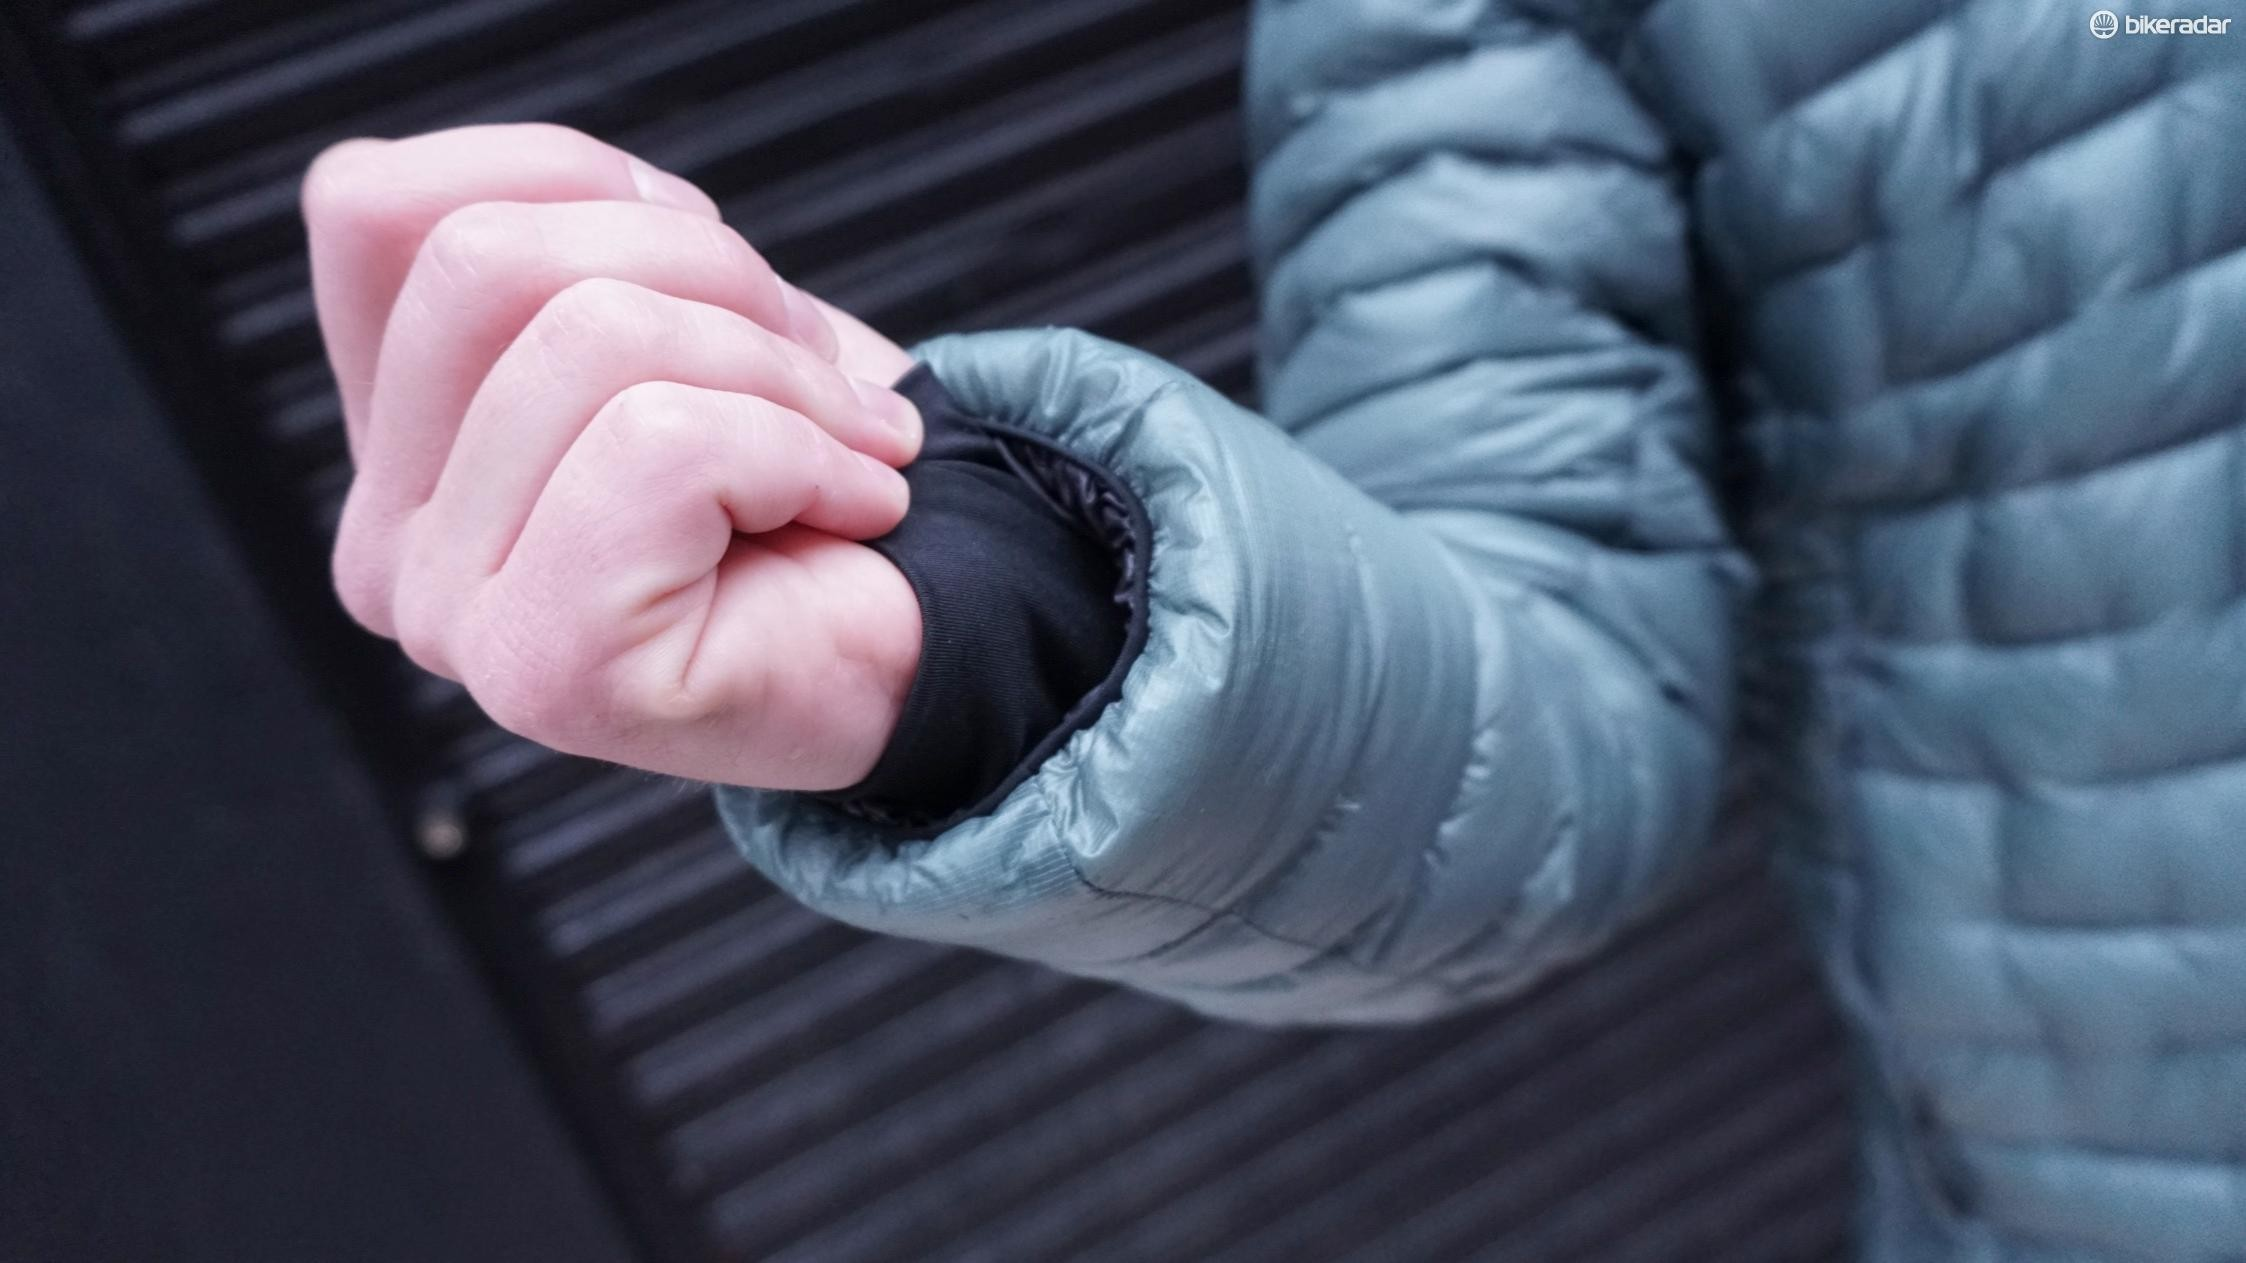 Baffles by the wrists keep warmth in